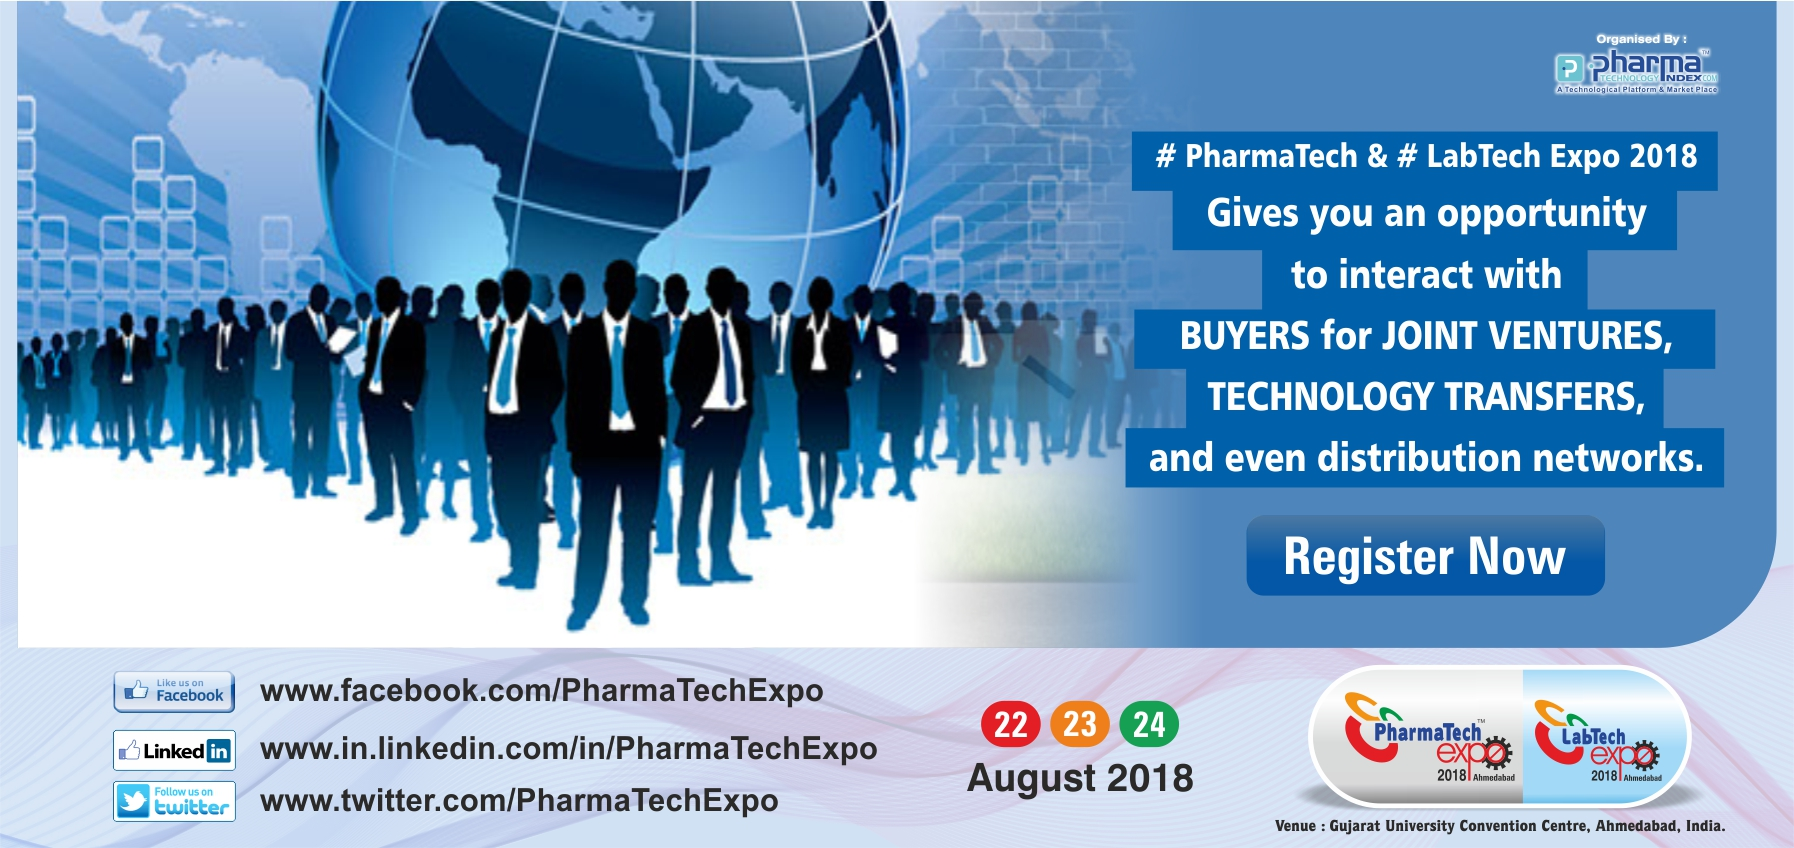 PharmaTech Expo -Western India's largest Pharma & Lab Expo, Ahmedabad, Gujarat, India